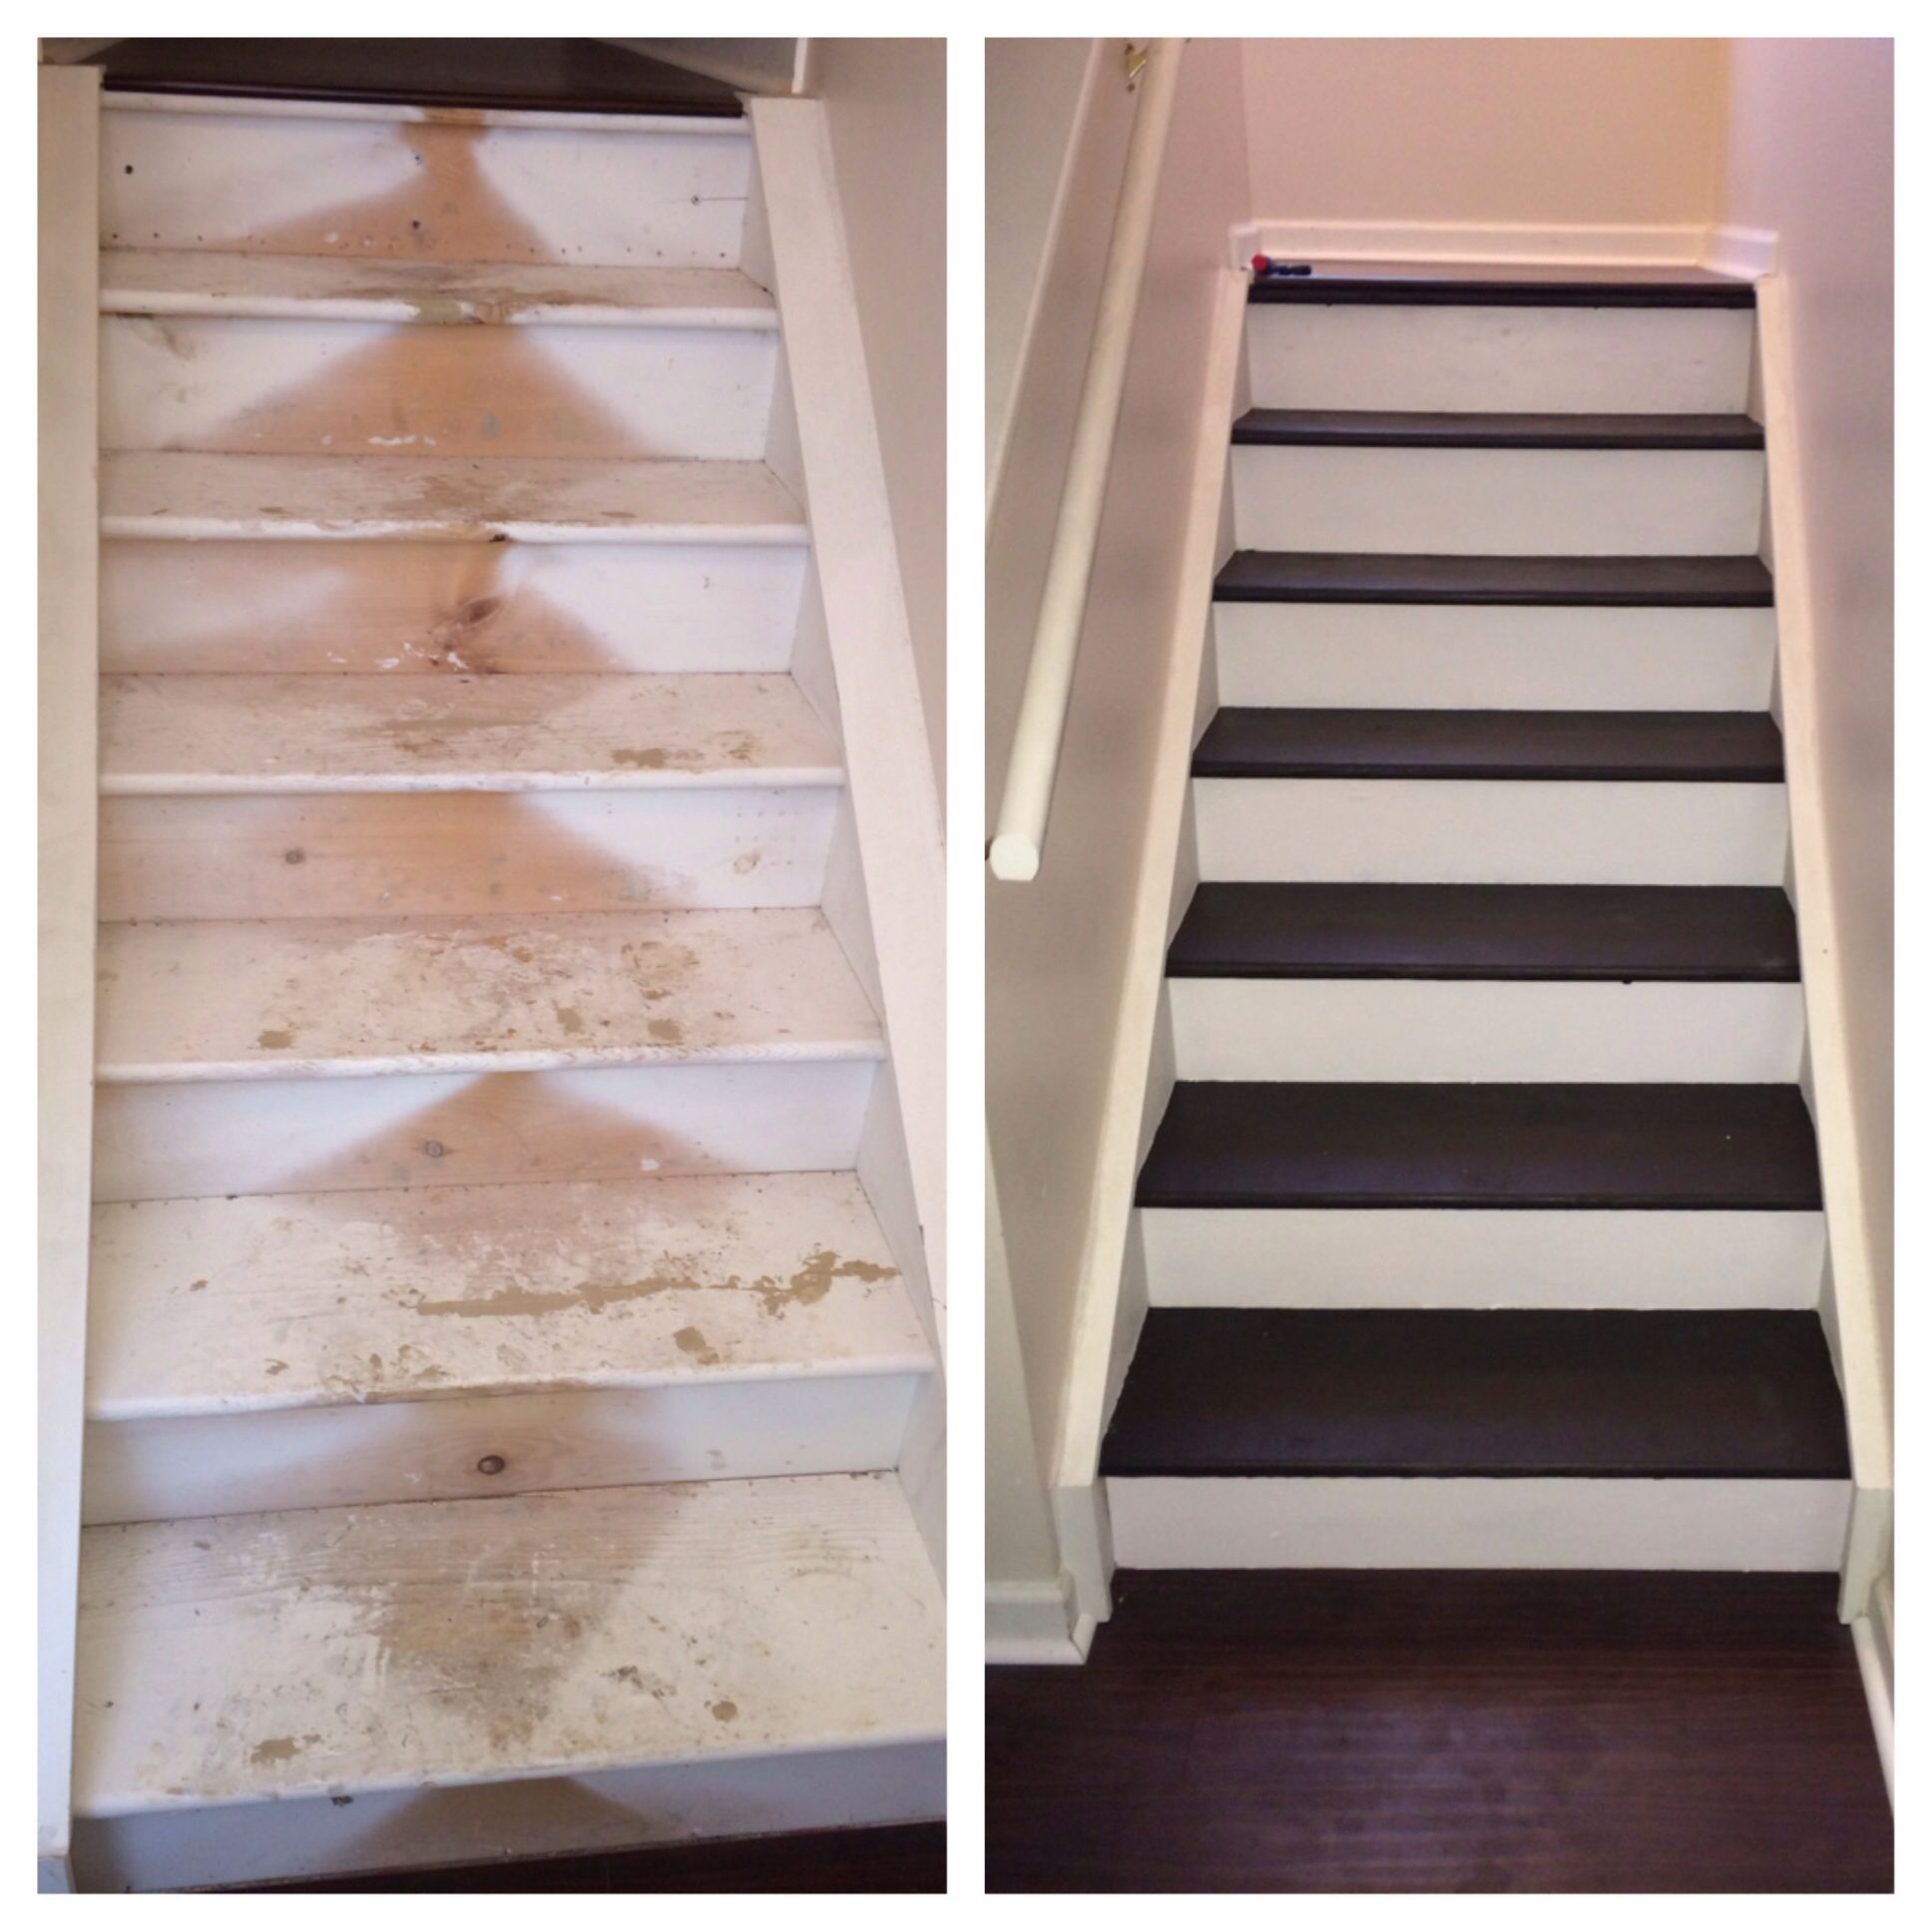 I Ripped The Carpet Off My Stairs And Refinished Them. I Used A Dark Brown